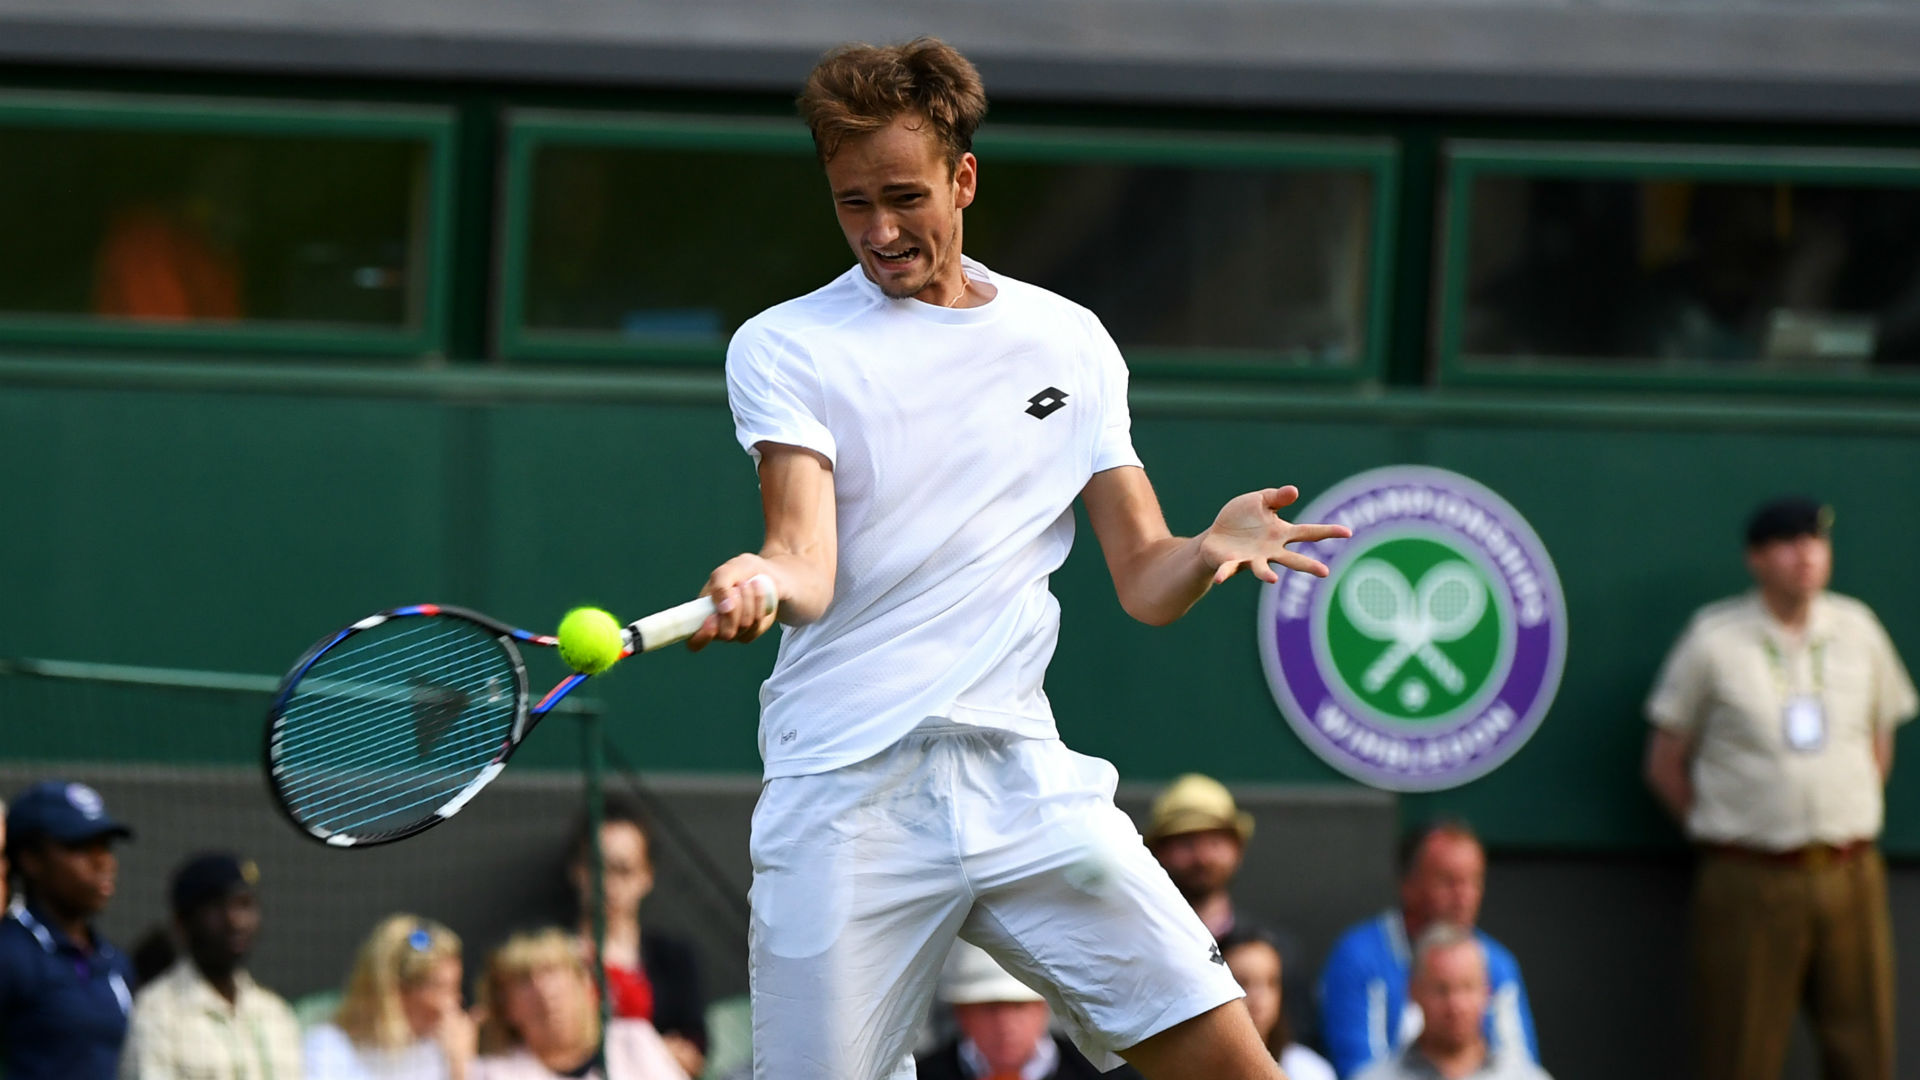 Medvedev Upsets Wawrinka in Winning Wimbledon Debut